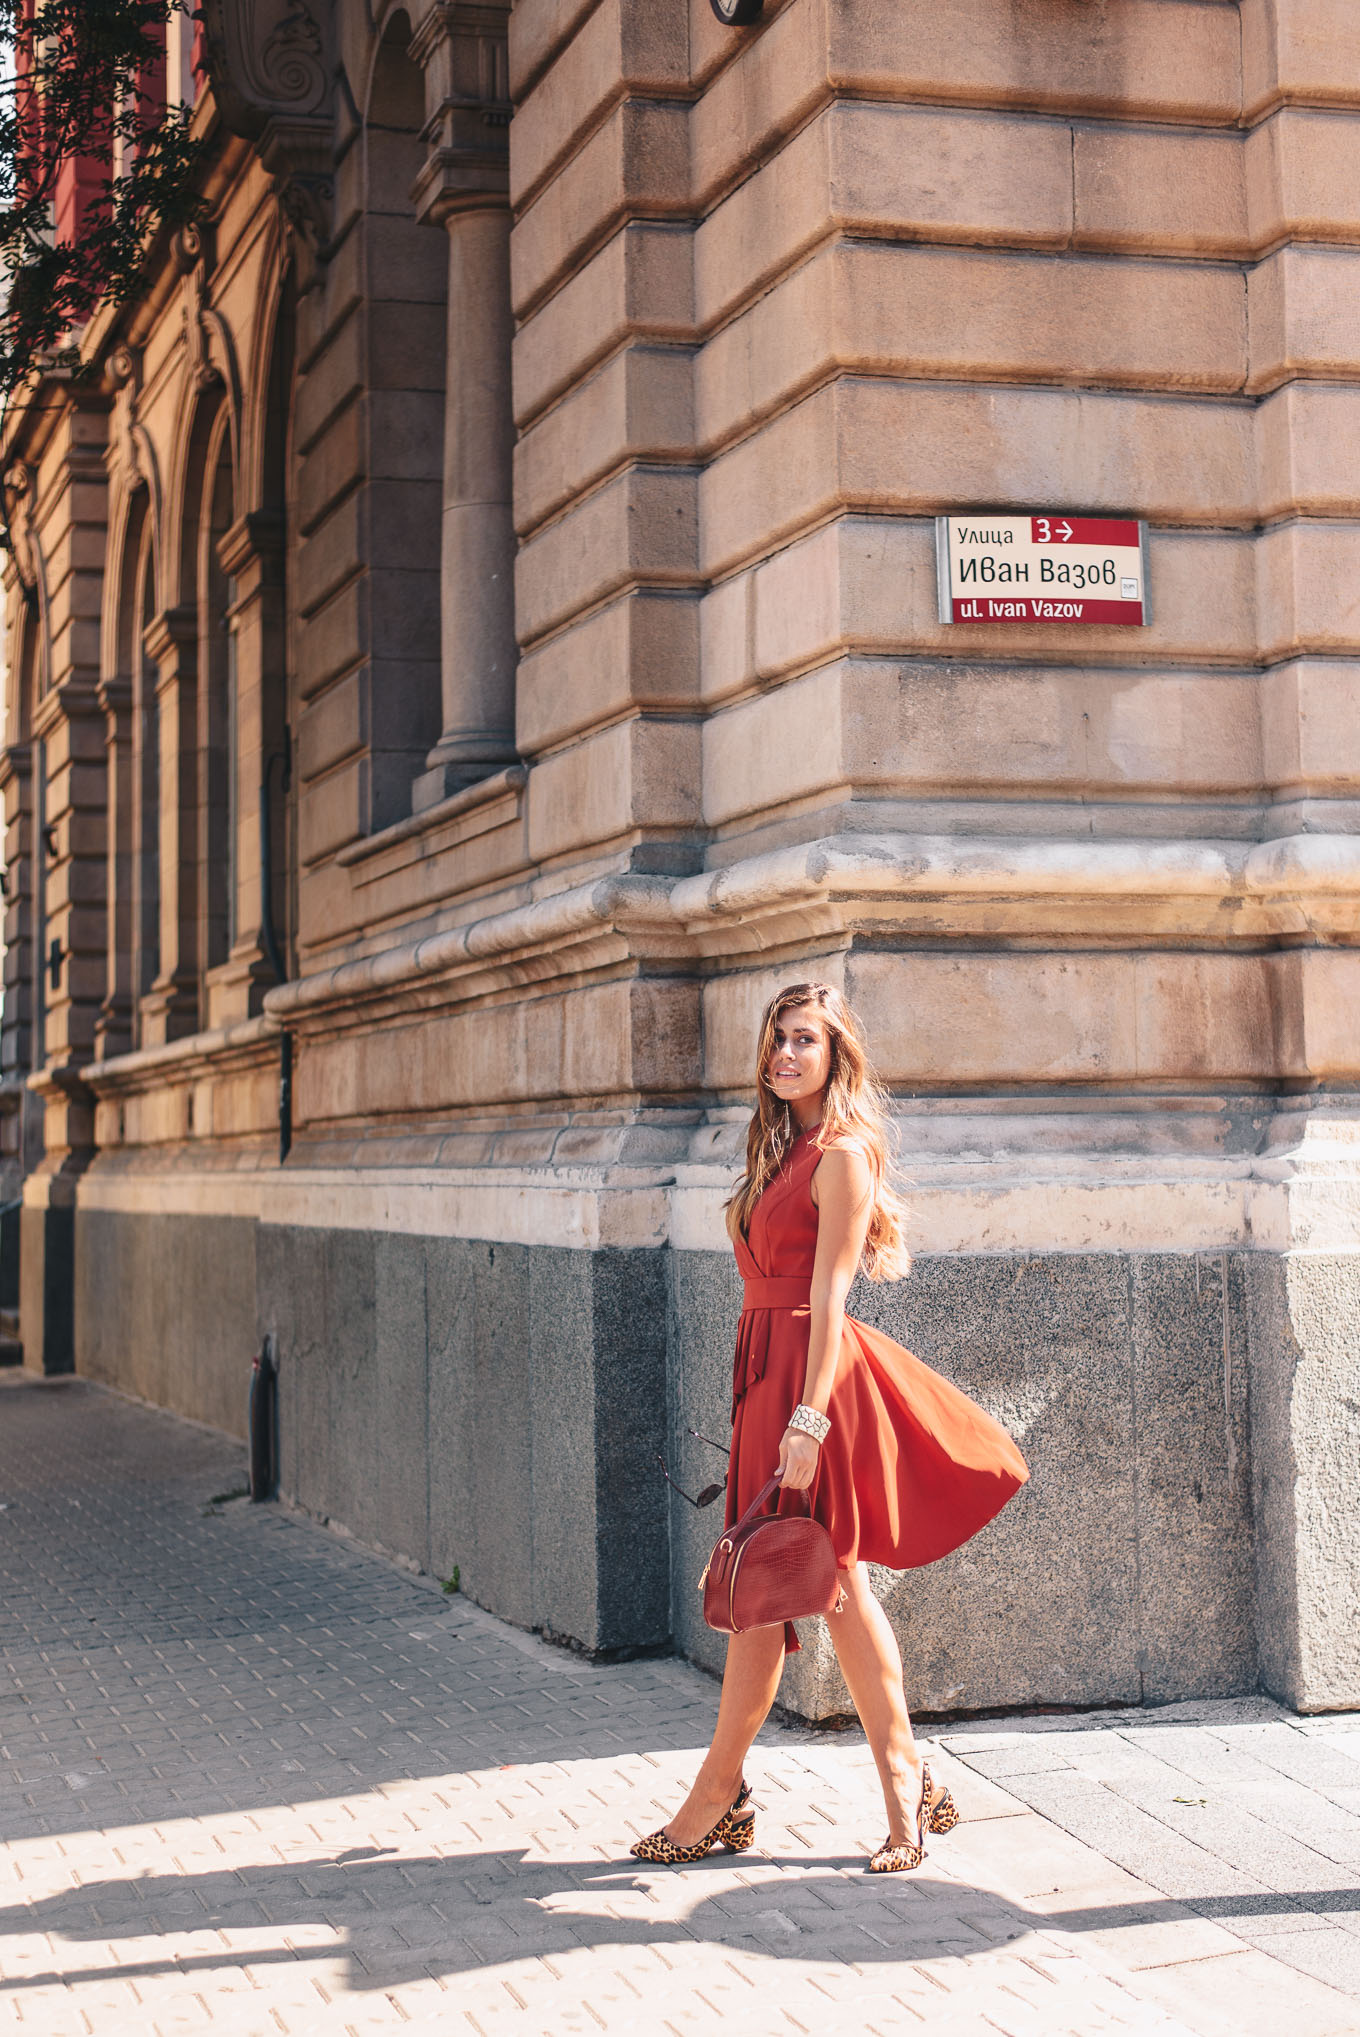 Walking down the street in a red dress